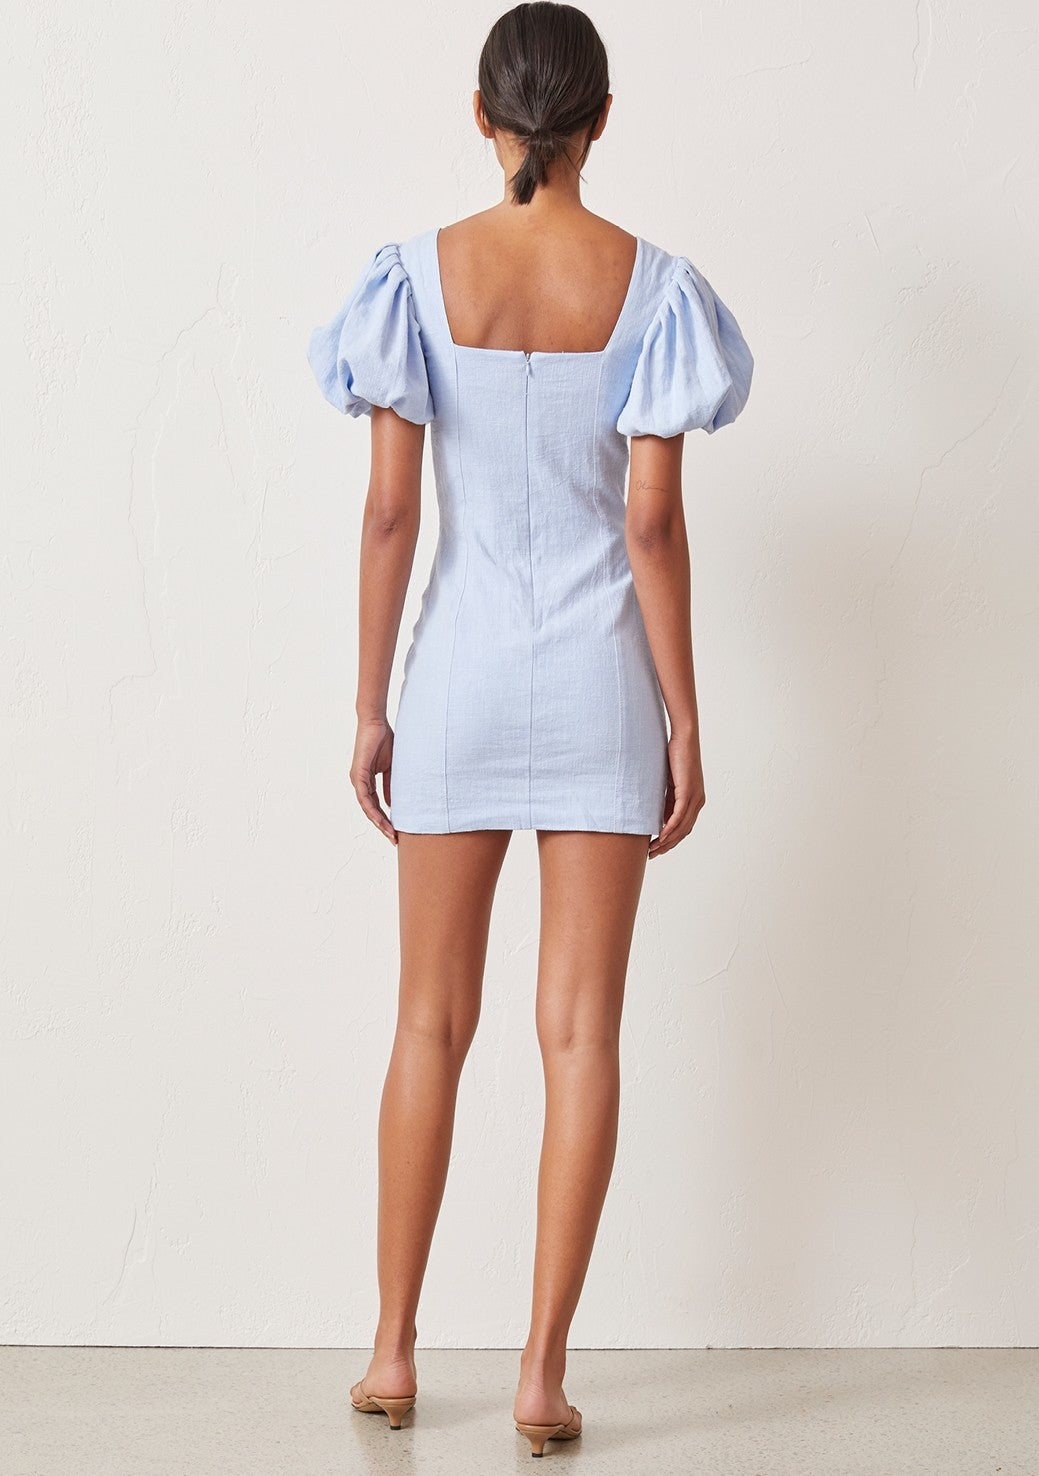 Bec & Bridge Anika Mini Dress - Sky Blue